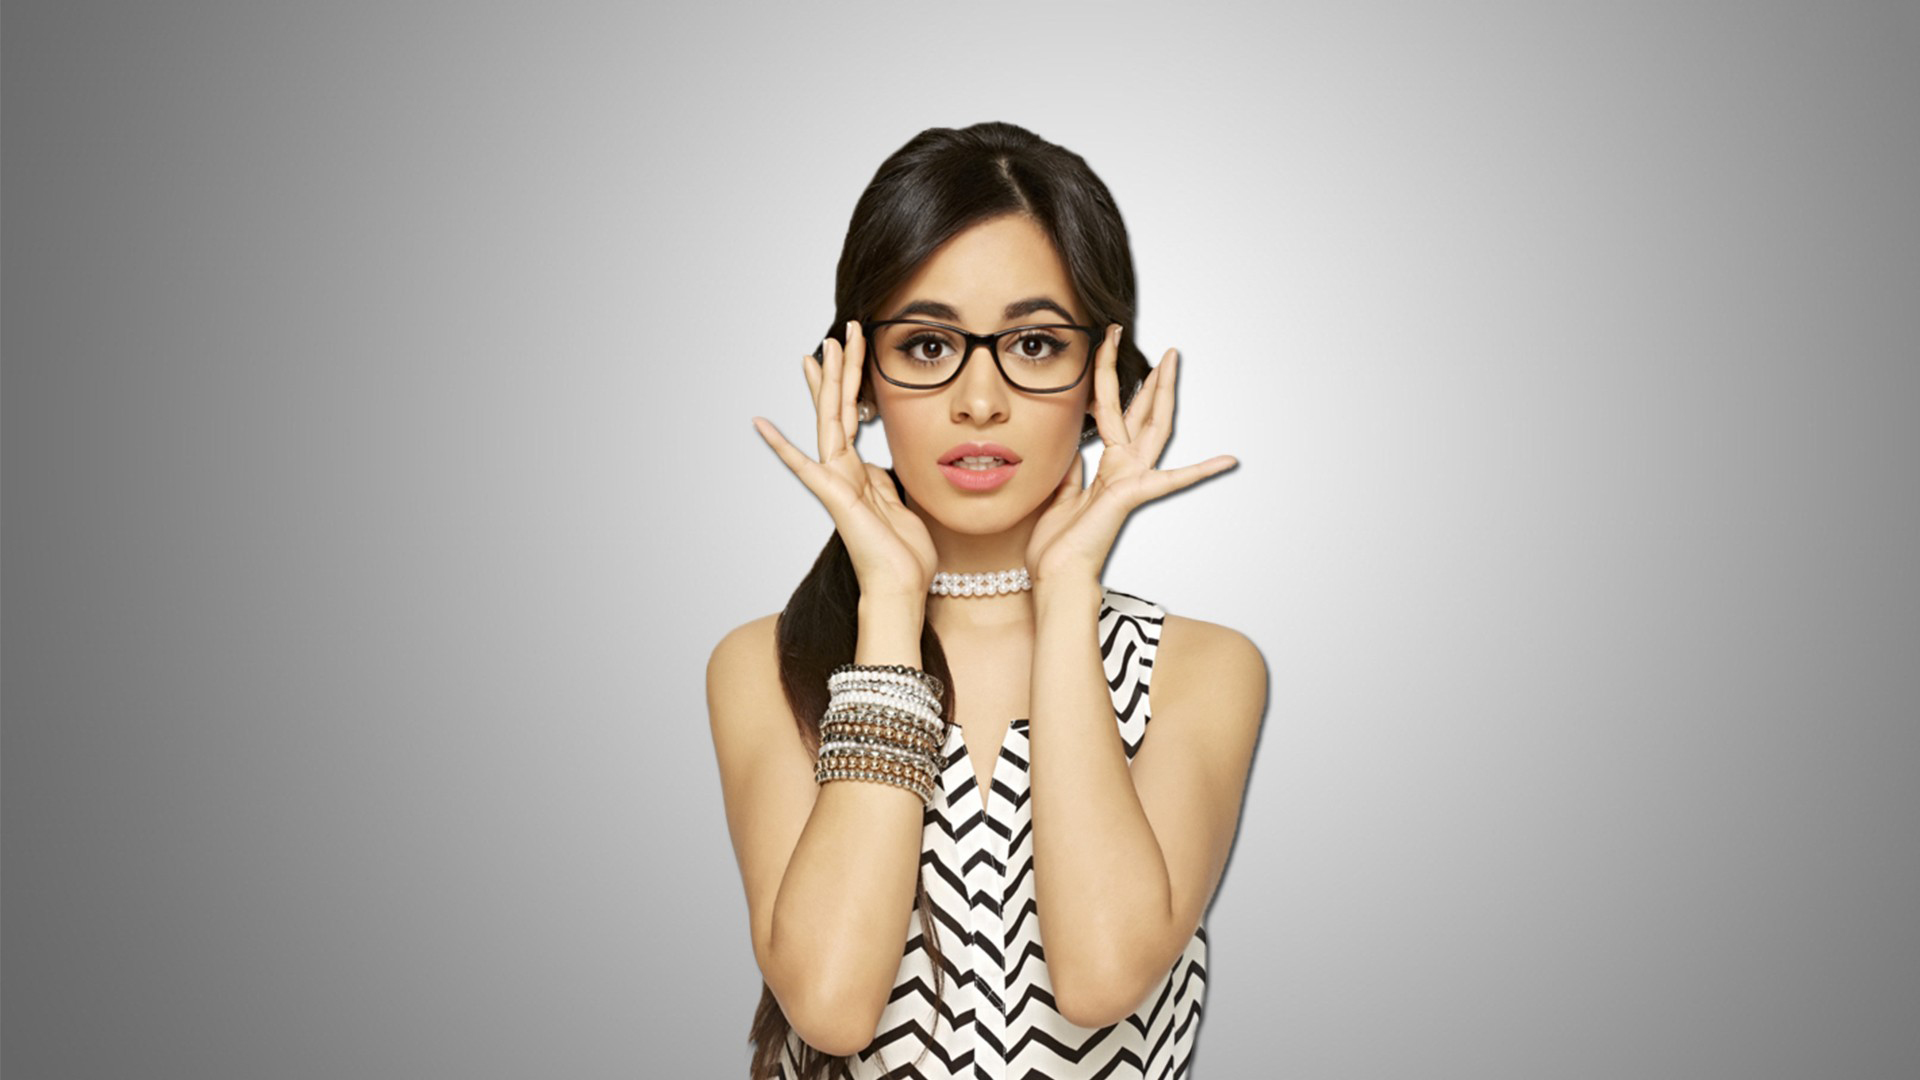 Camila Cabello In Glasses Wallpaper